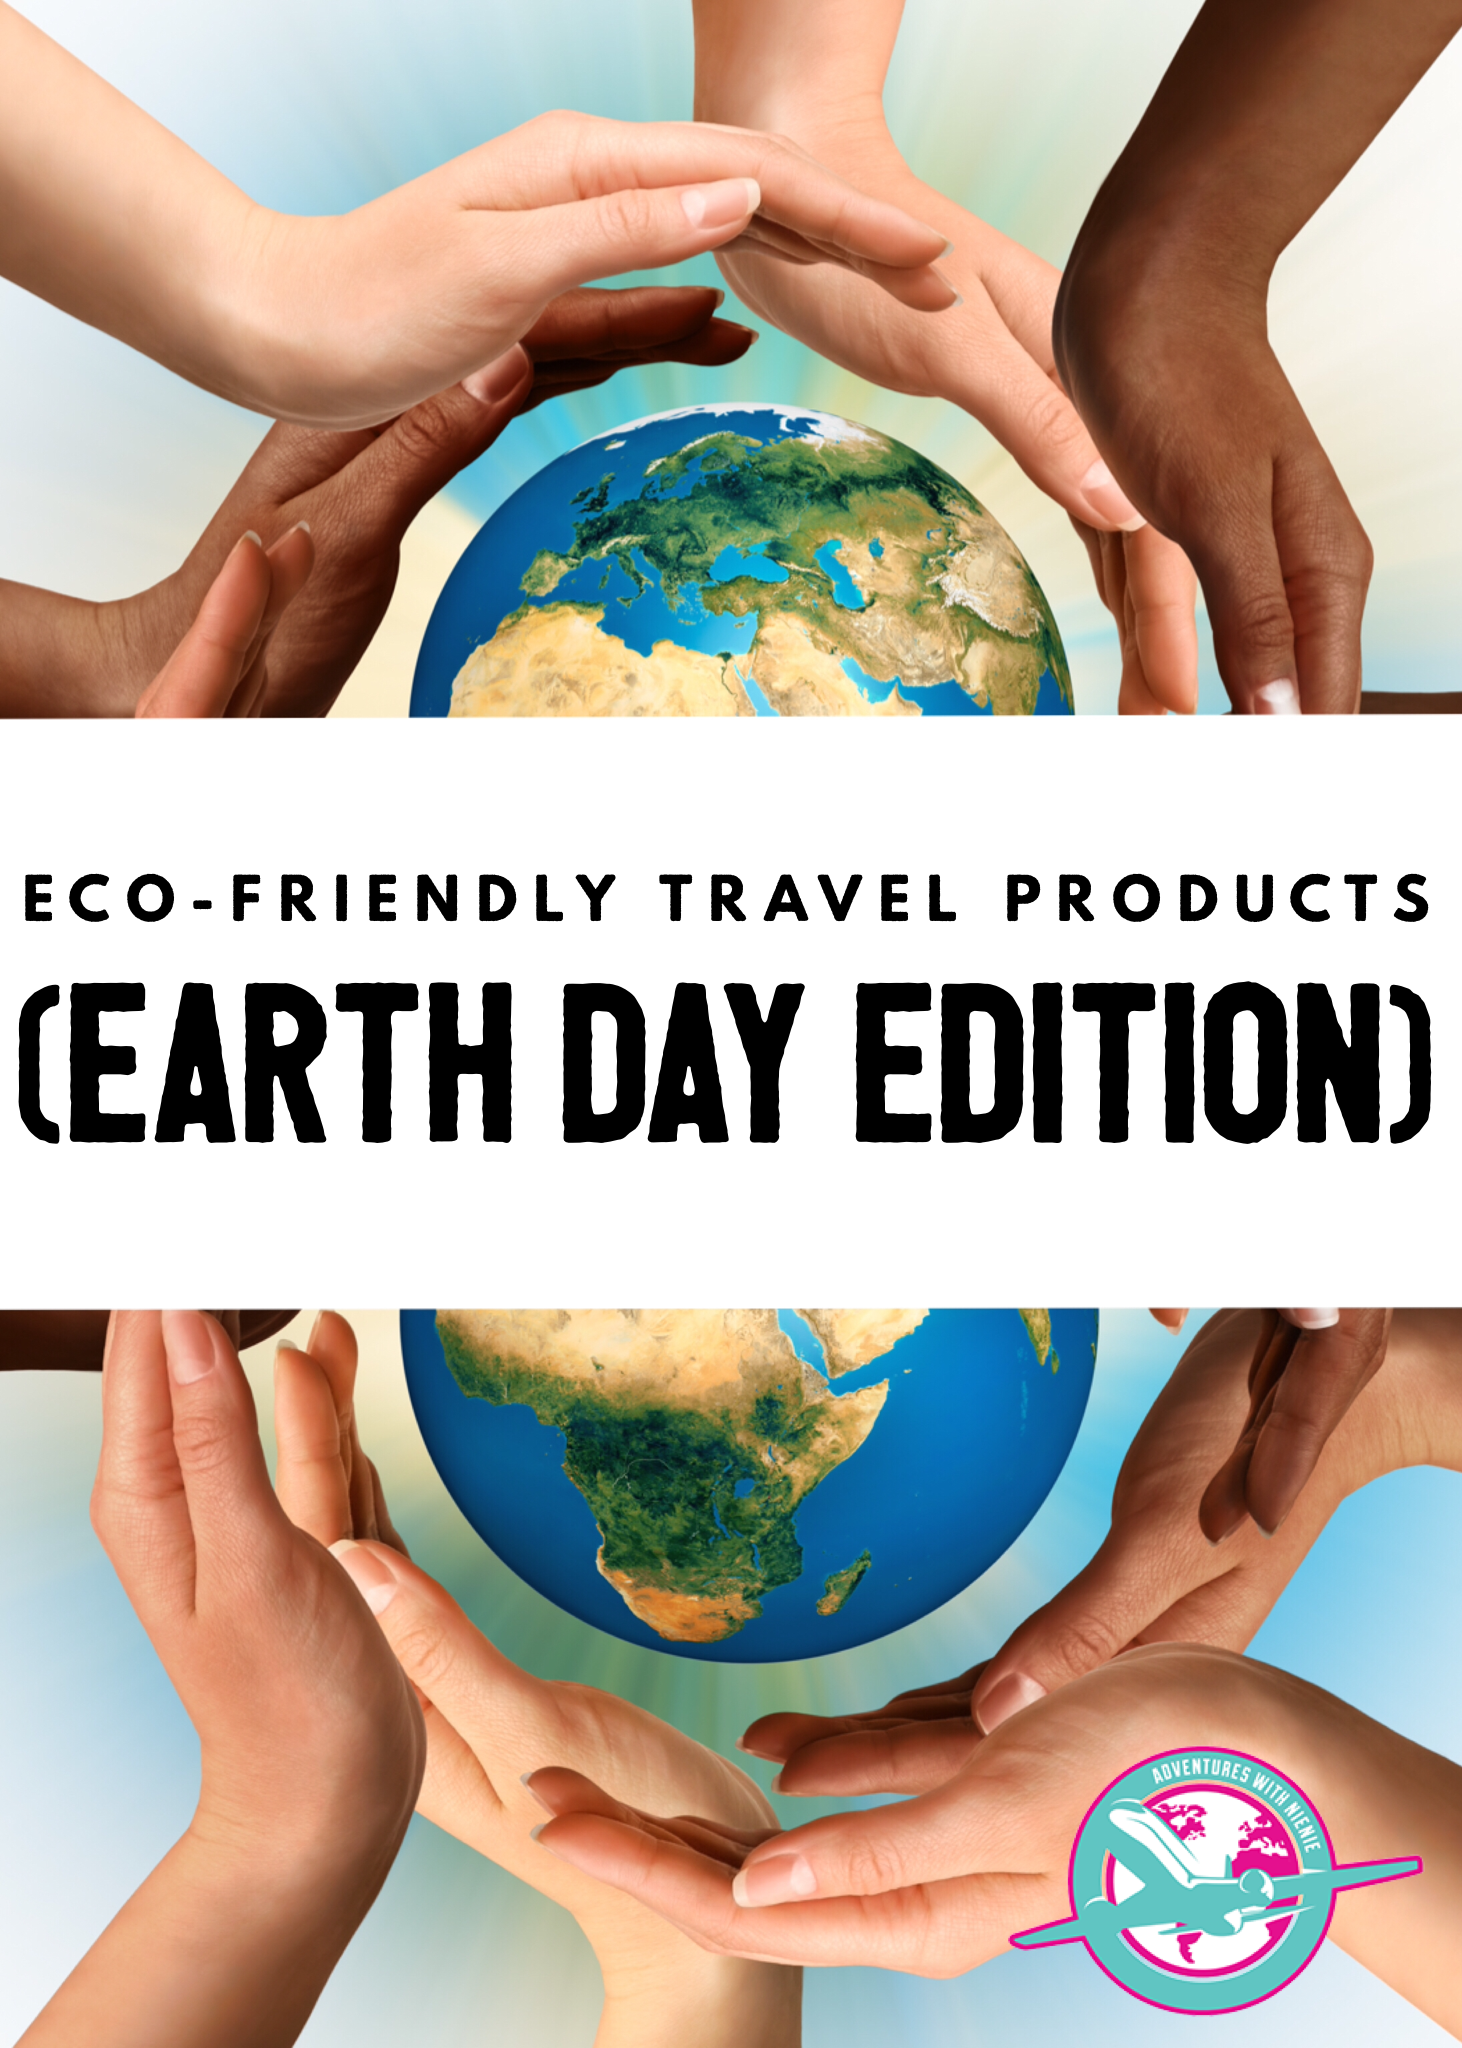 Eco-Friendly Travel Products (Earth Day Edition) - Adventures With NieNie Eco-Friendly Travel Products (Earth Day Edition) – Adventures With NieNie    Eco-Friendly Travel P #adventures #Day #earth #Ecotravel #EcoFriendly #edition #friendly #nienie #products #travel